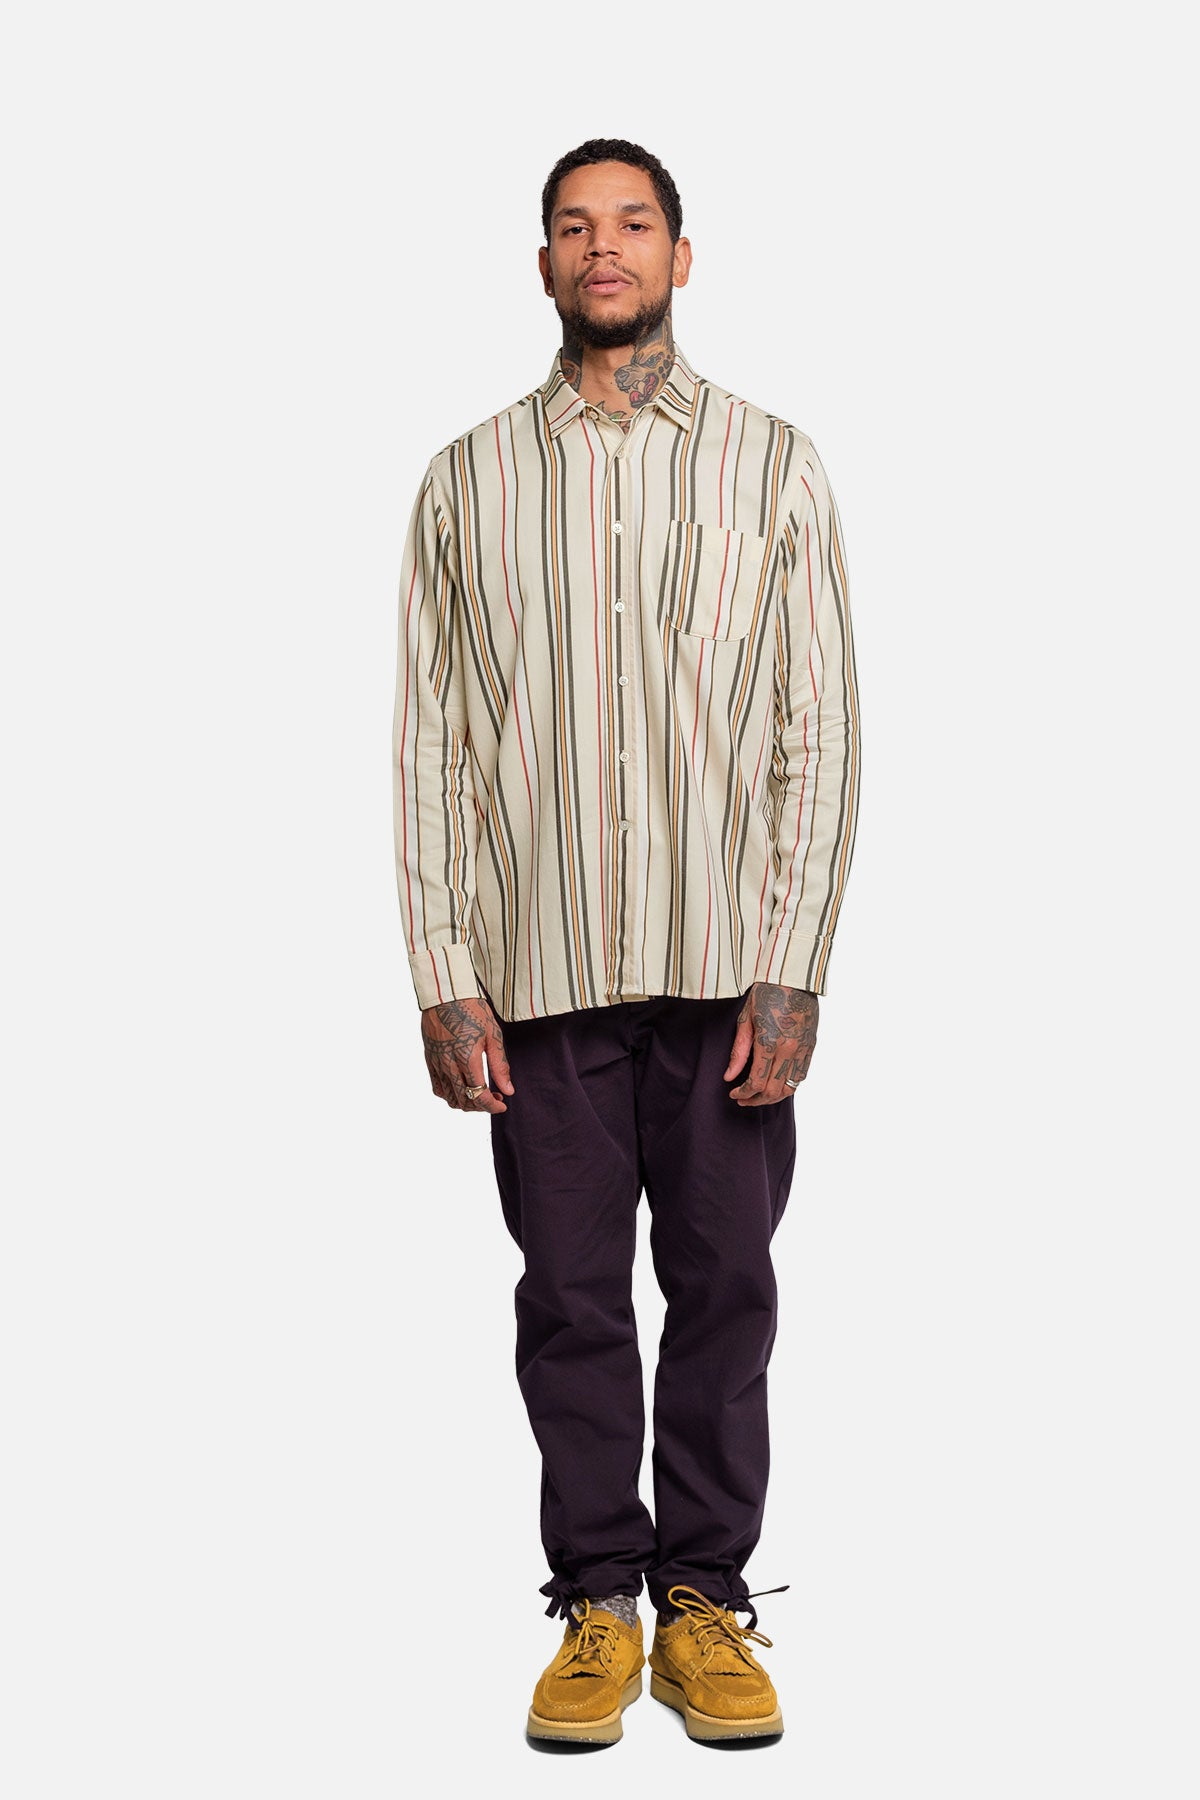 1905 SHIRT IN NEUTRAL / RED STRIPE - Fortune Goods